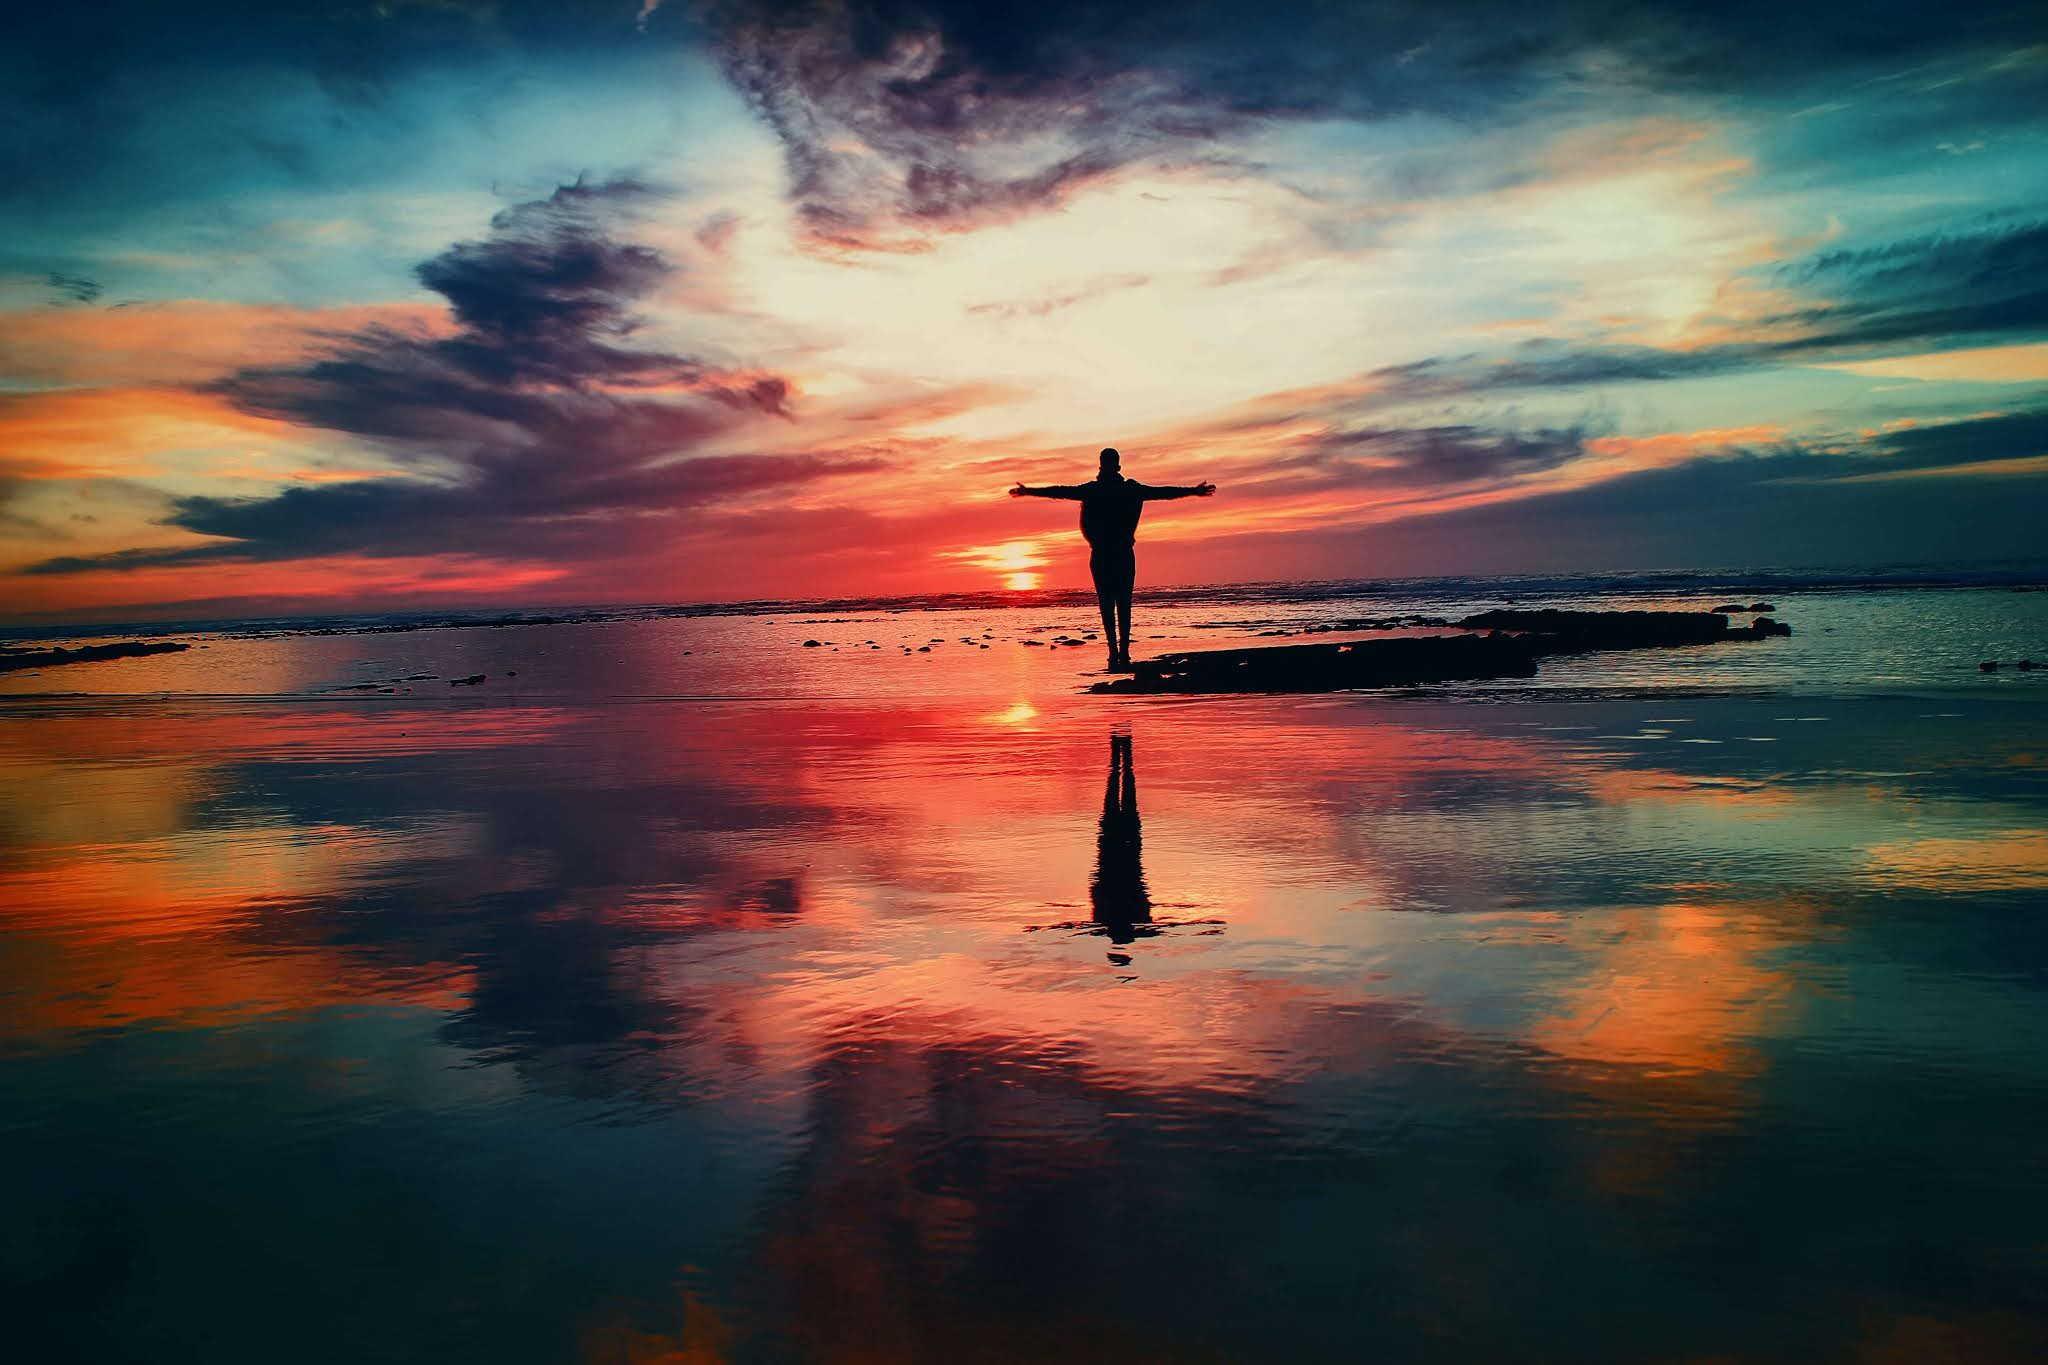 Man with open arms forming a cross with sky reflected in the water beneath him and sunsetting with way too much different colors other than orange